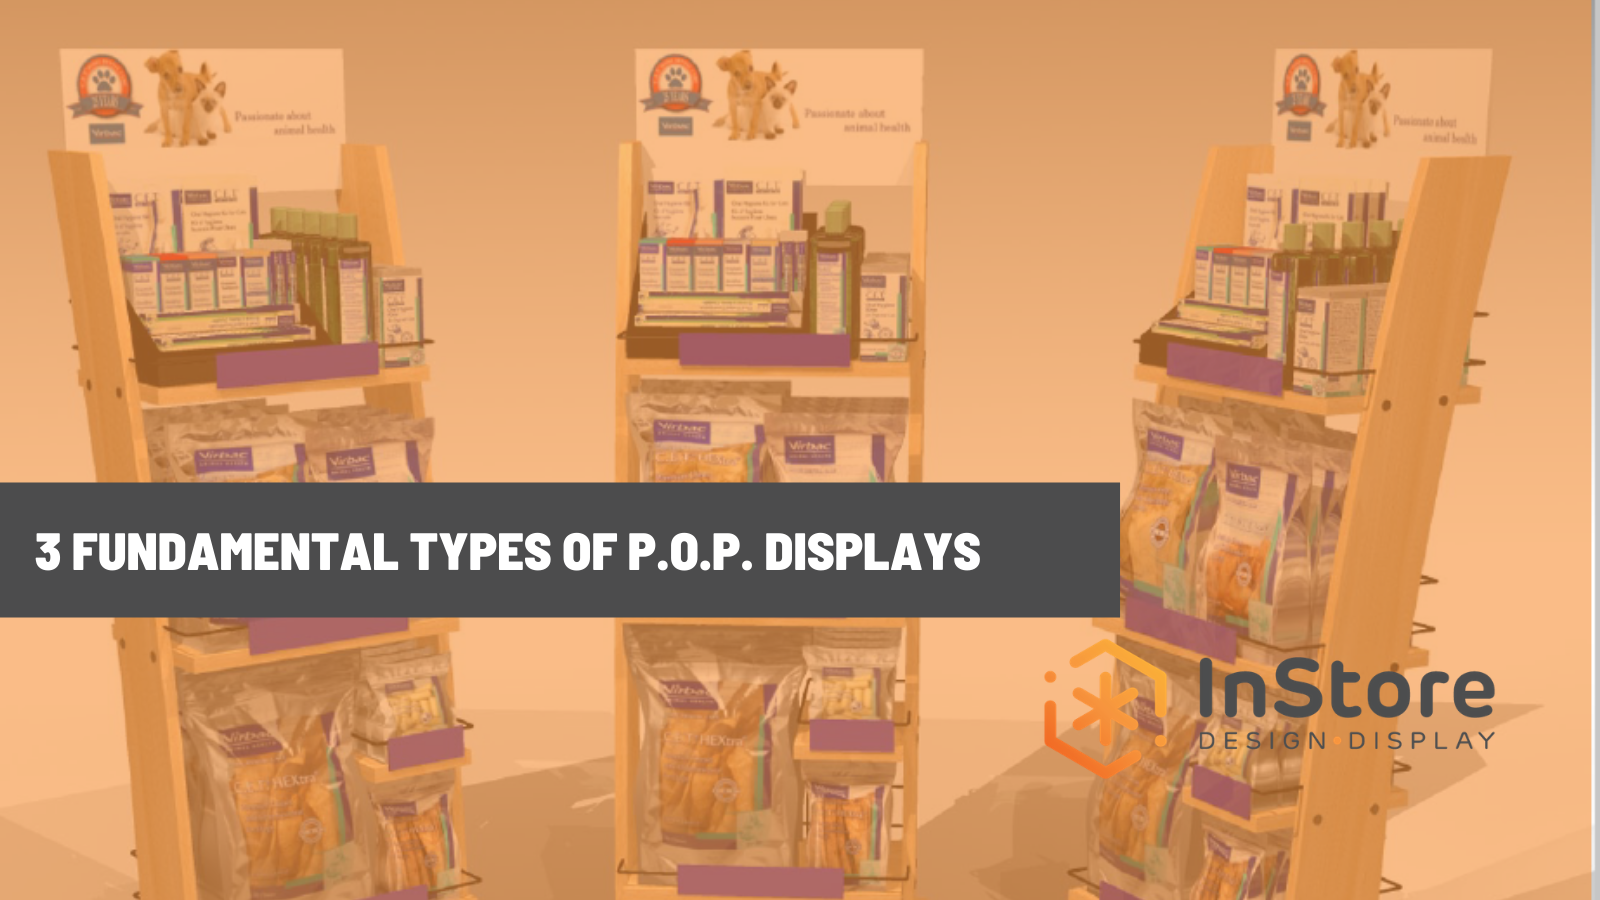 The 3 Fundamental Types of Point-of-Purchase (POP) Displays